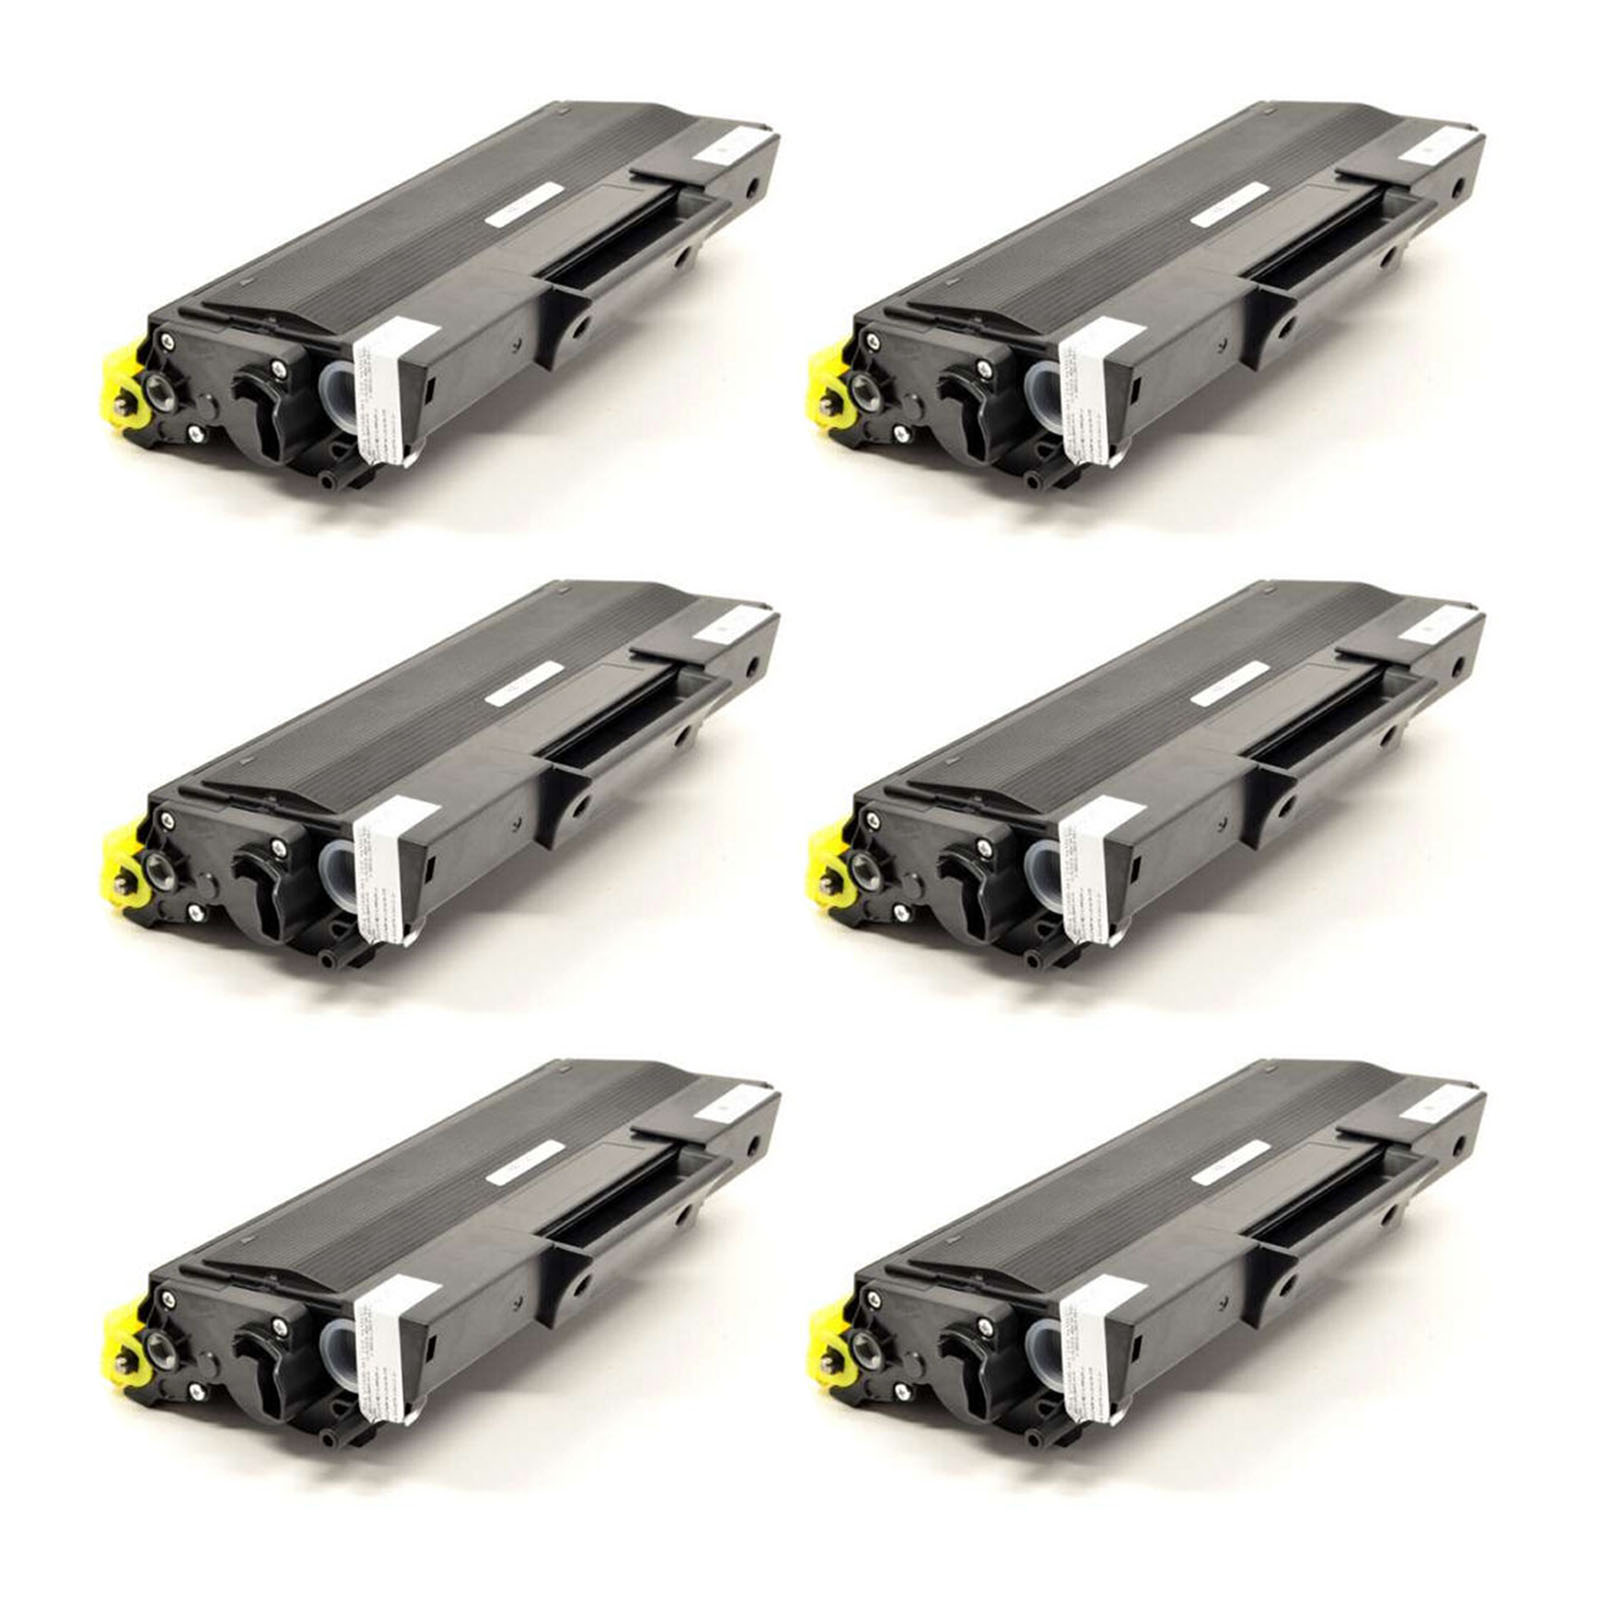 1PK TN670 TN-670 Black Toner Cartridge Compatible for Brother HL-6050DW Printer